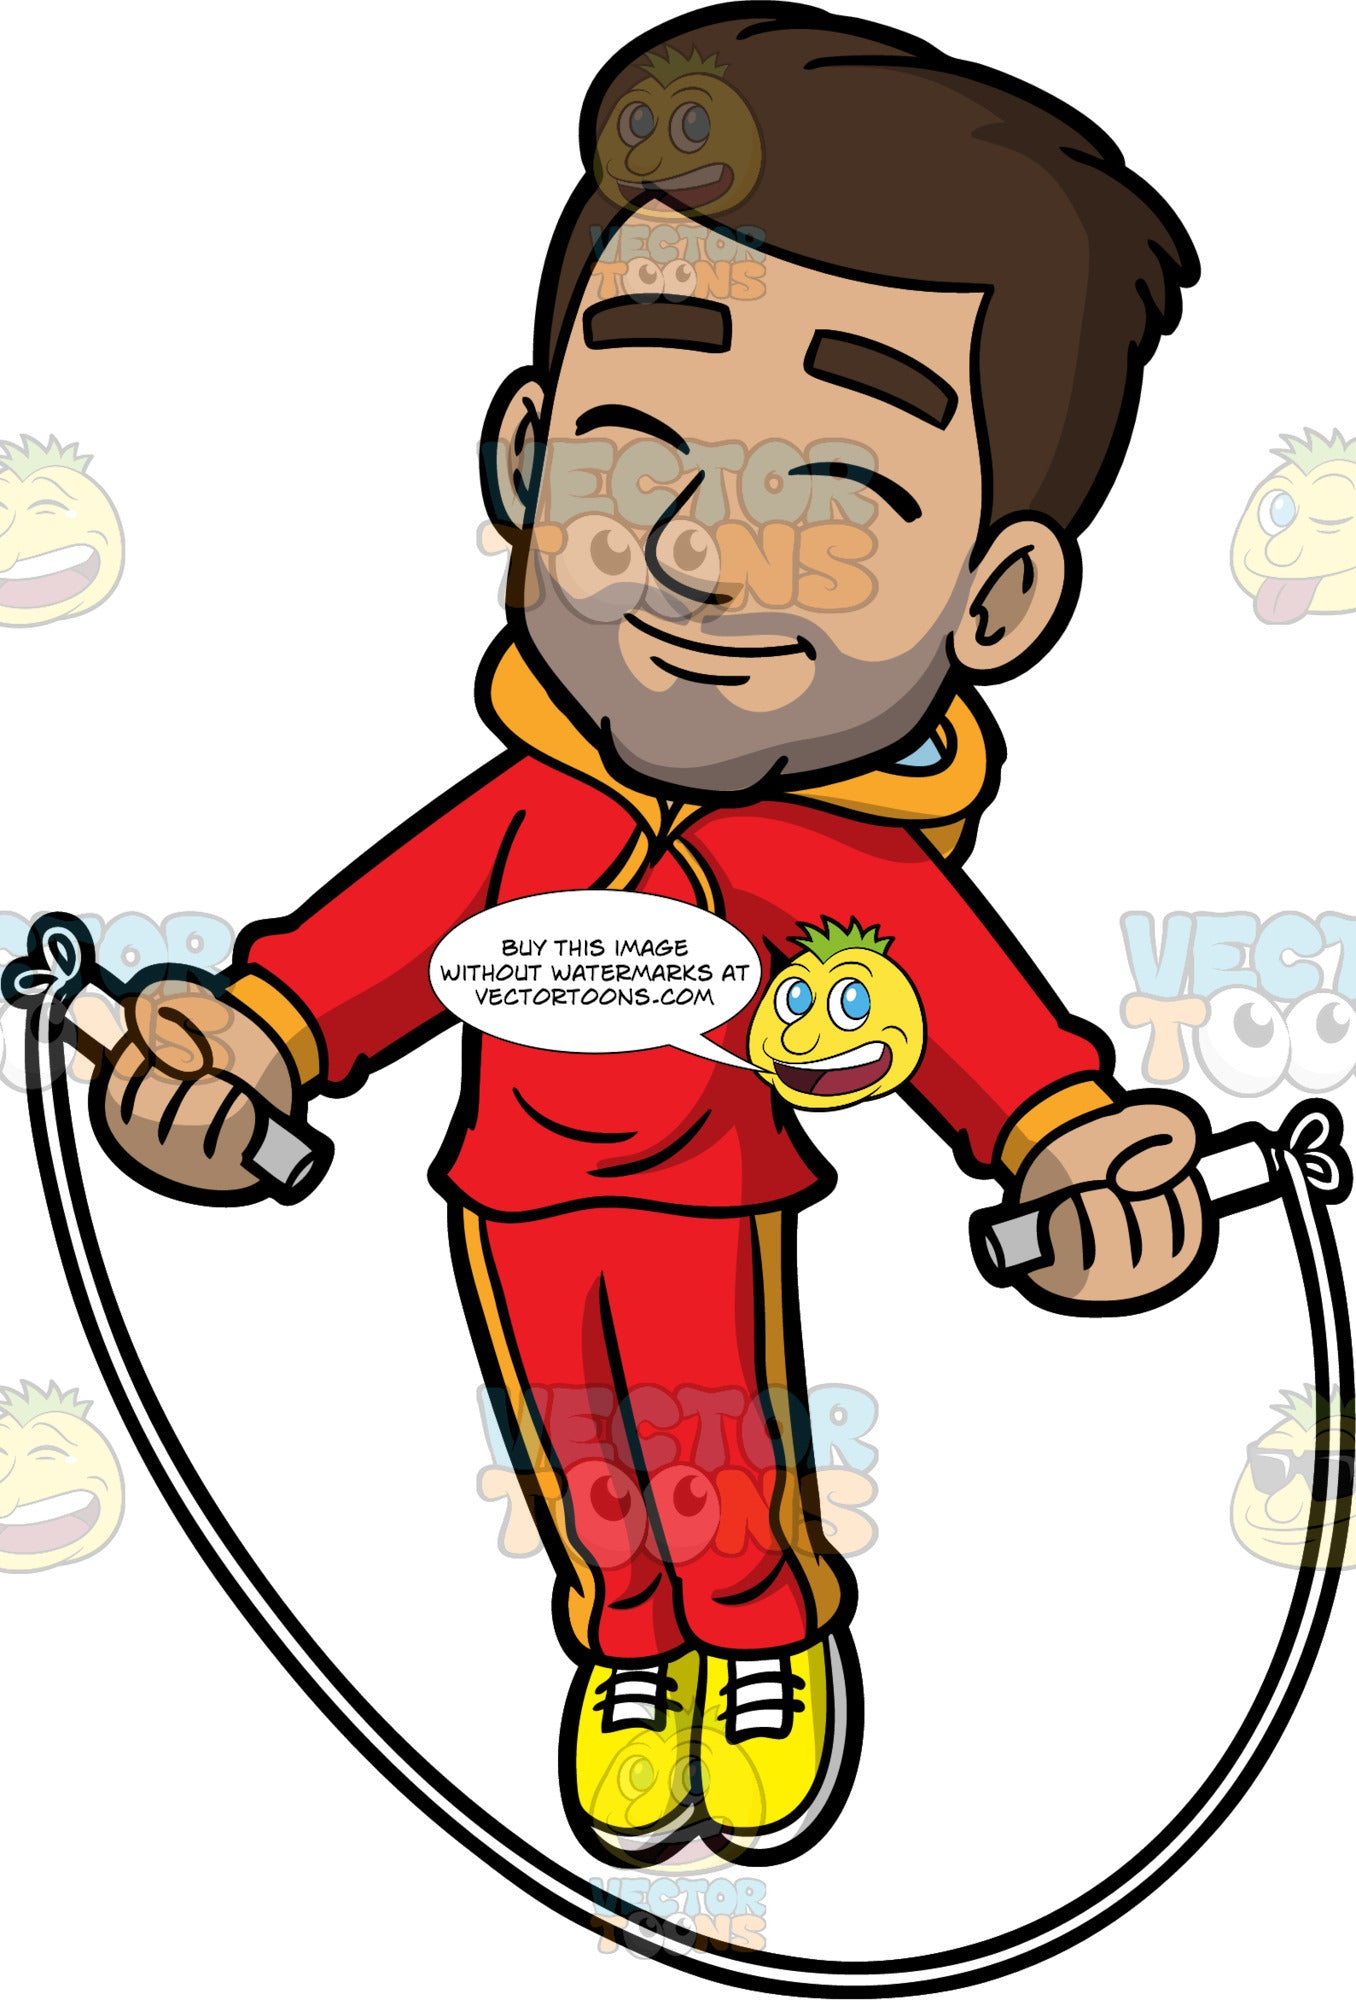 Gabriel Jumping Rope. A Hispanic man wearing red track pants, a red hoodie, and yellow running shoes, smiling and closing his eyes while jumping over a skipping rope